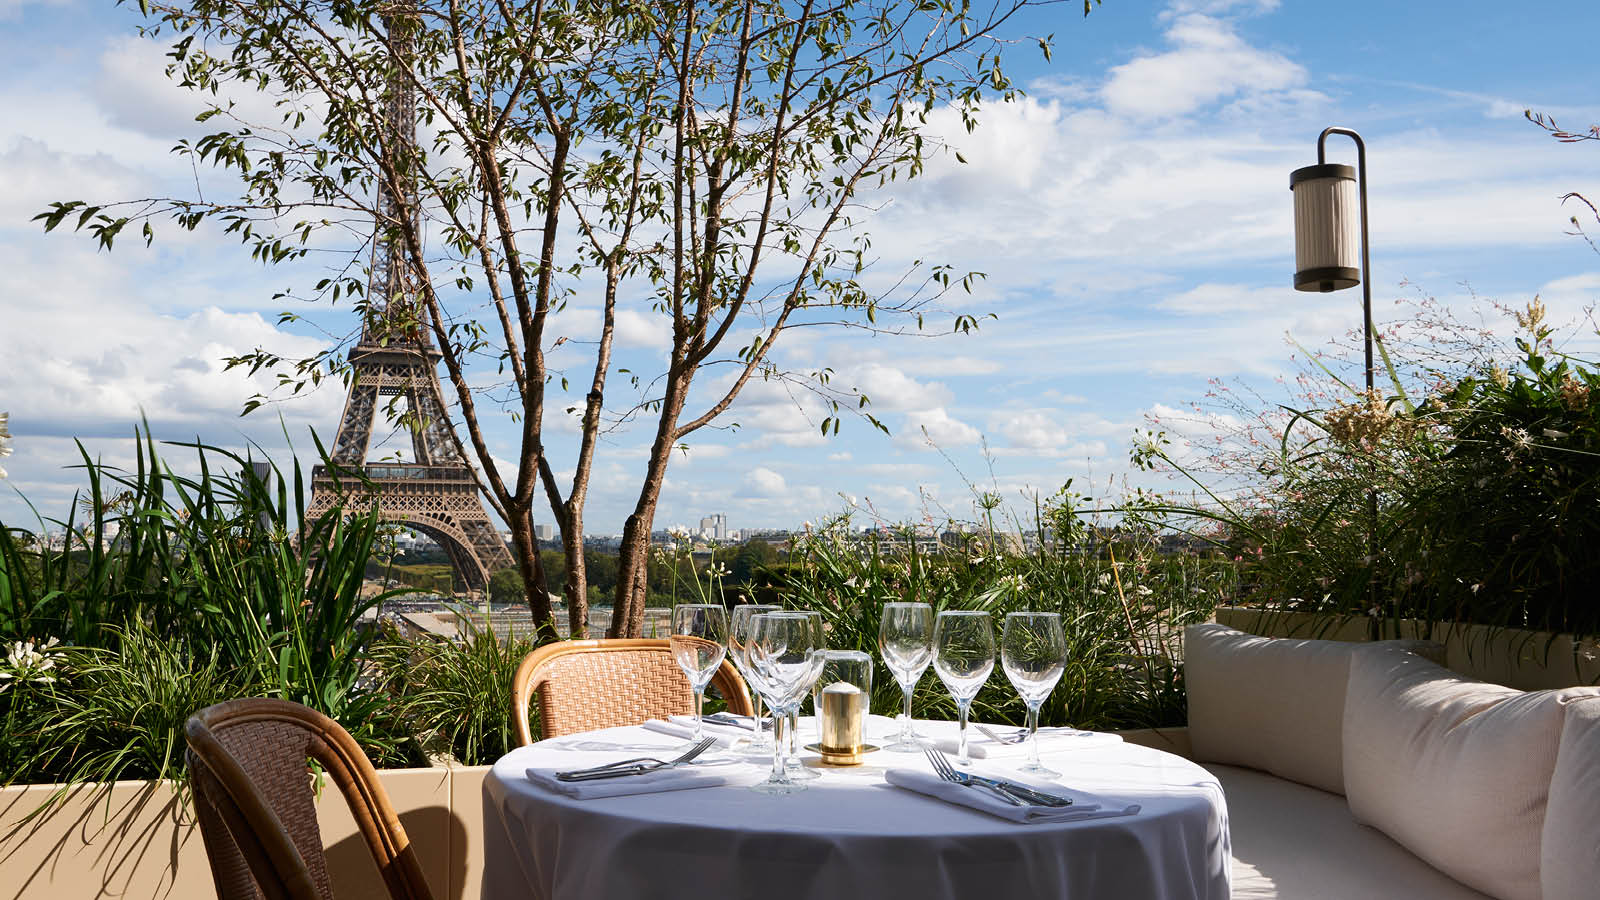 Restaurant Toit Terrasse A Paris 5 Terrasses Pour Profiter De Paris Pendant La Fashion Week